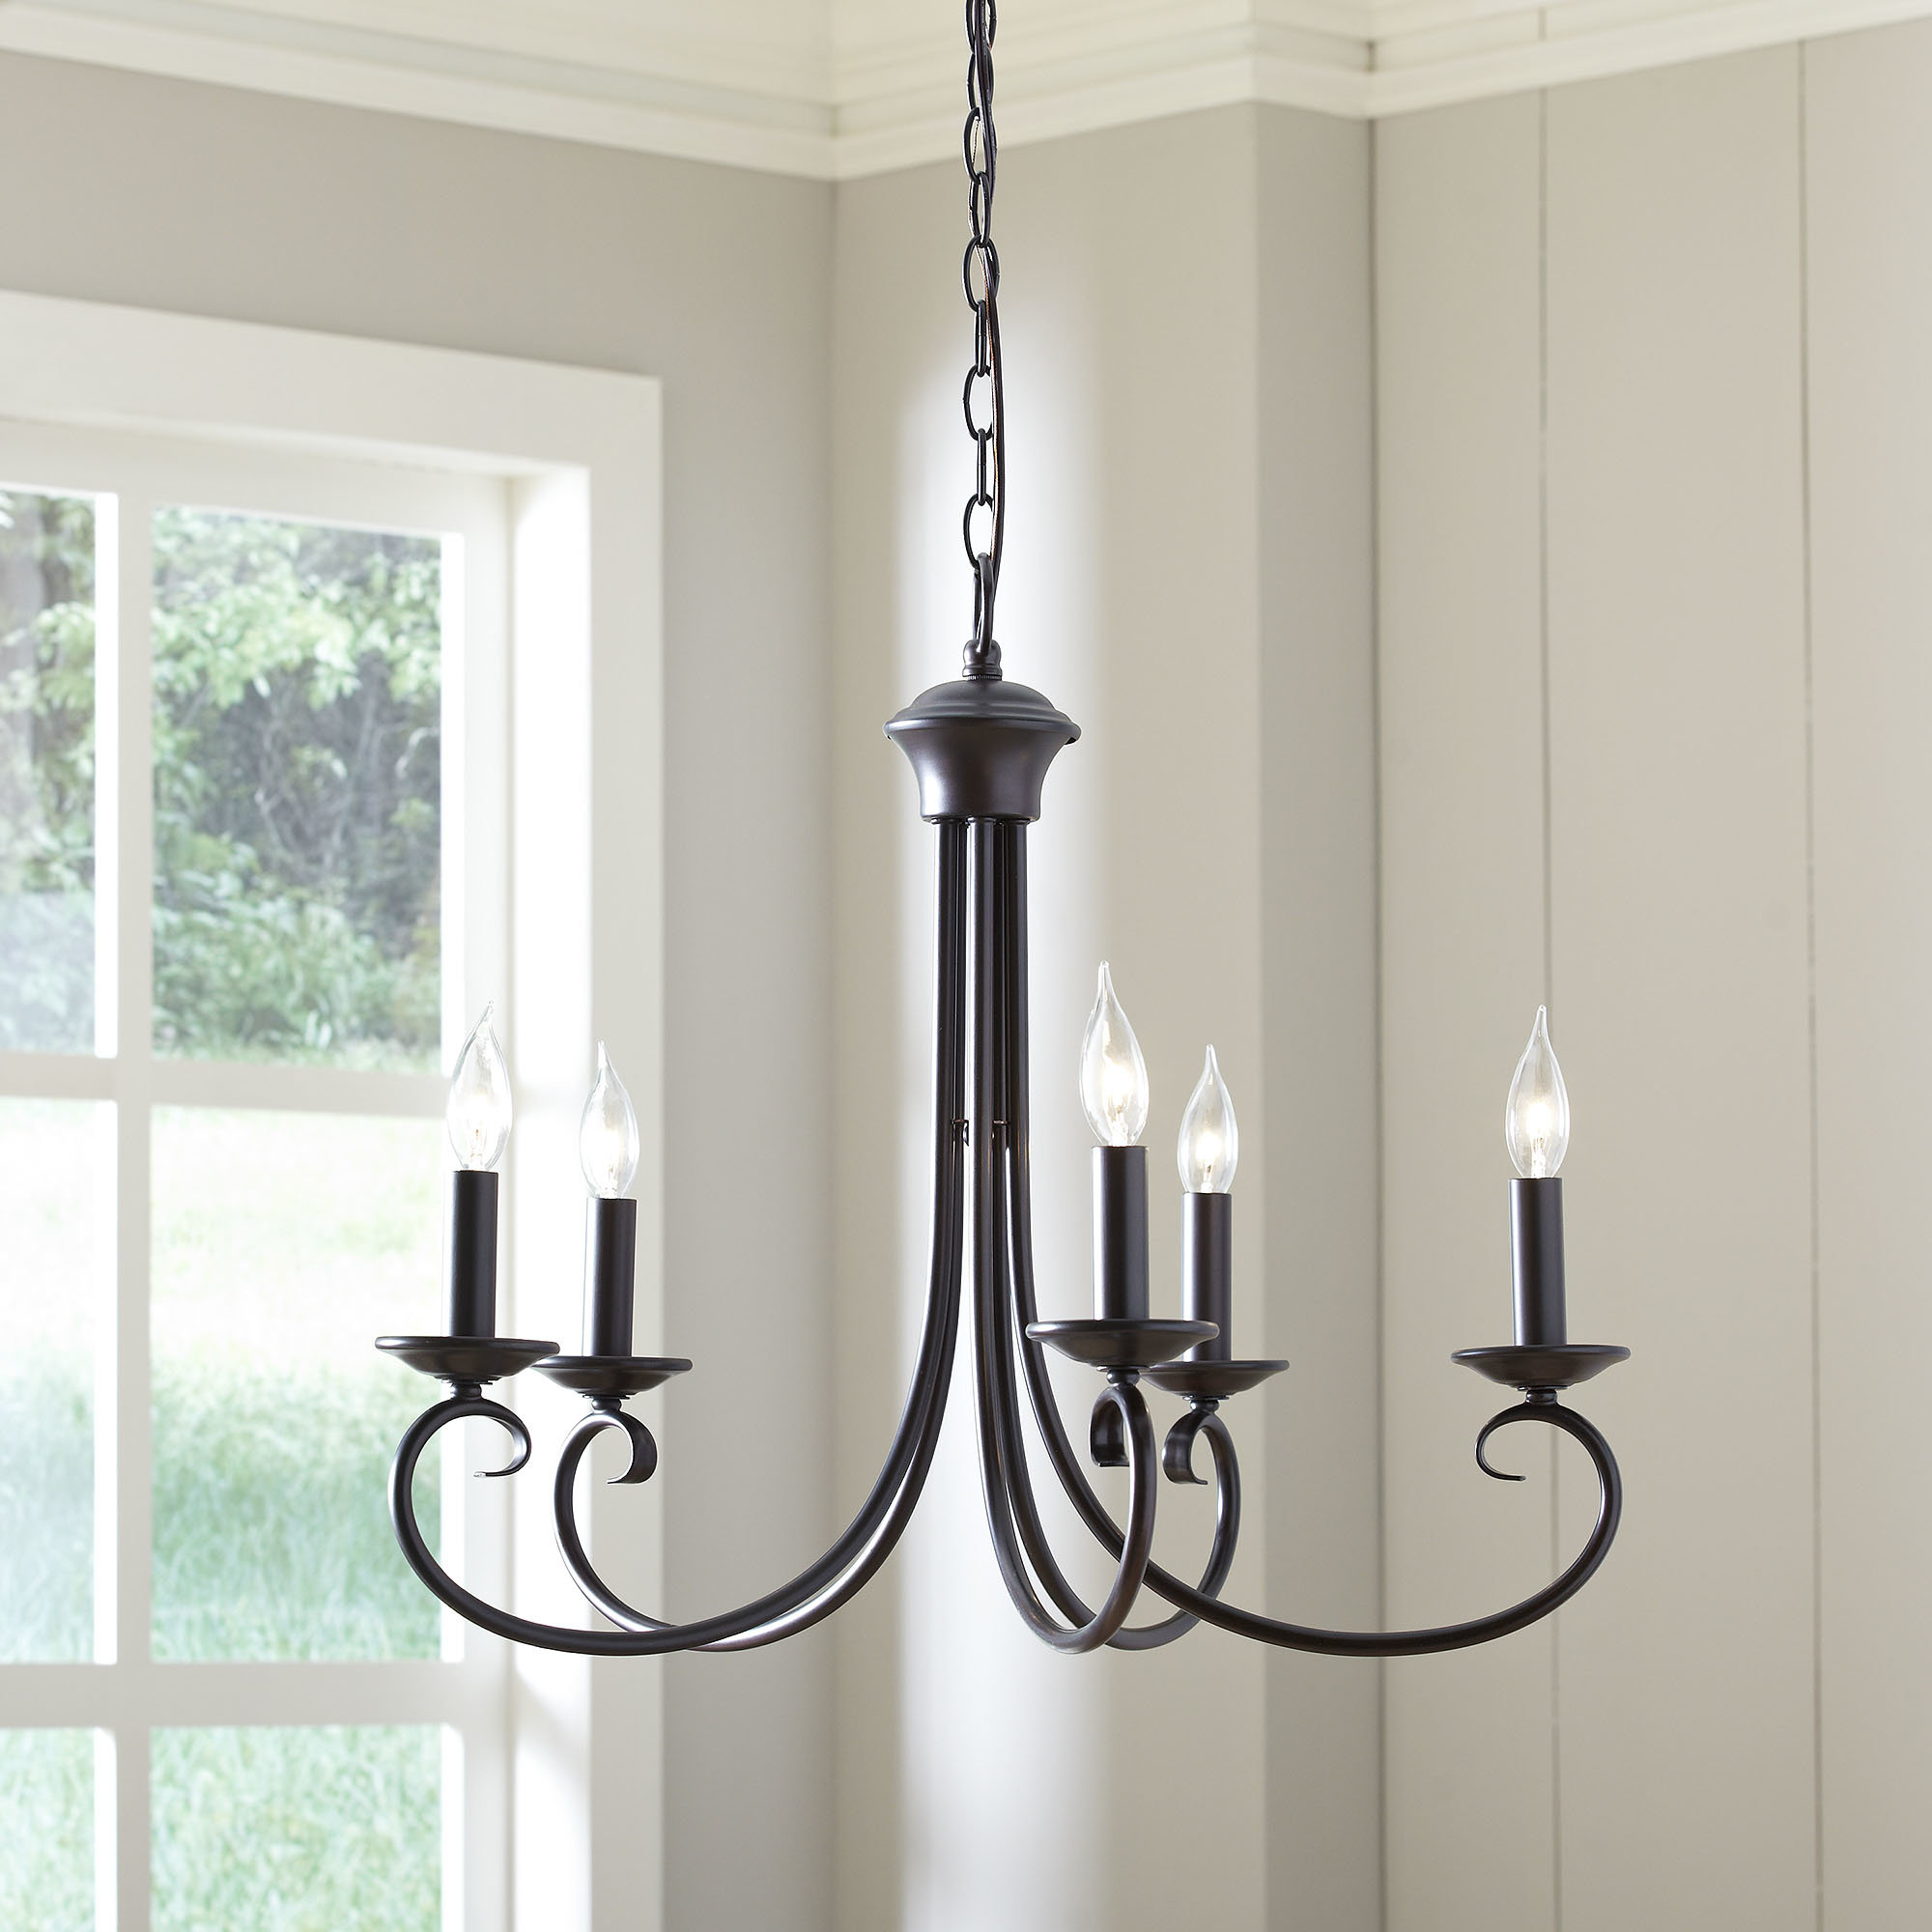 Edgell 5 Light Candle Style Chandelier For Florentina 5 Light Candle Style Chandeliers (Photo 7 of 30)